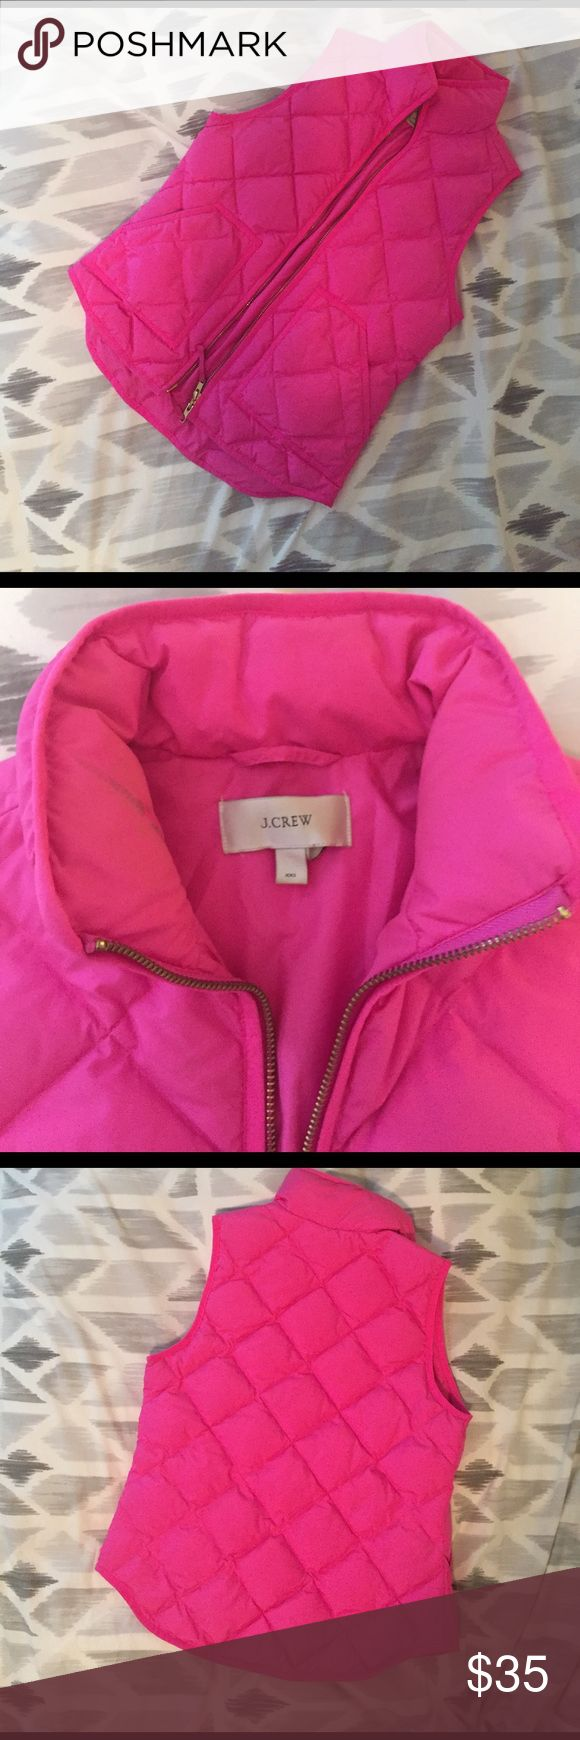 J Crew puffer vest Bright pink j crew puffer vest. Gold zipper. Lightweight but very warm. Warm only a few times. Small mark on inside of collar as shown in the last image (most likely will come off with some scrubbing). Fits sizes 0-2 approx. J. Crew Jackets & Coats Puffers